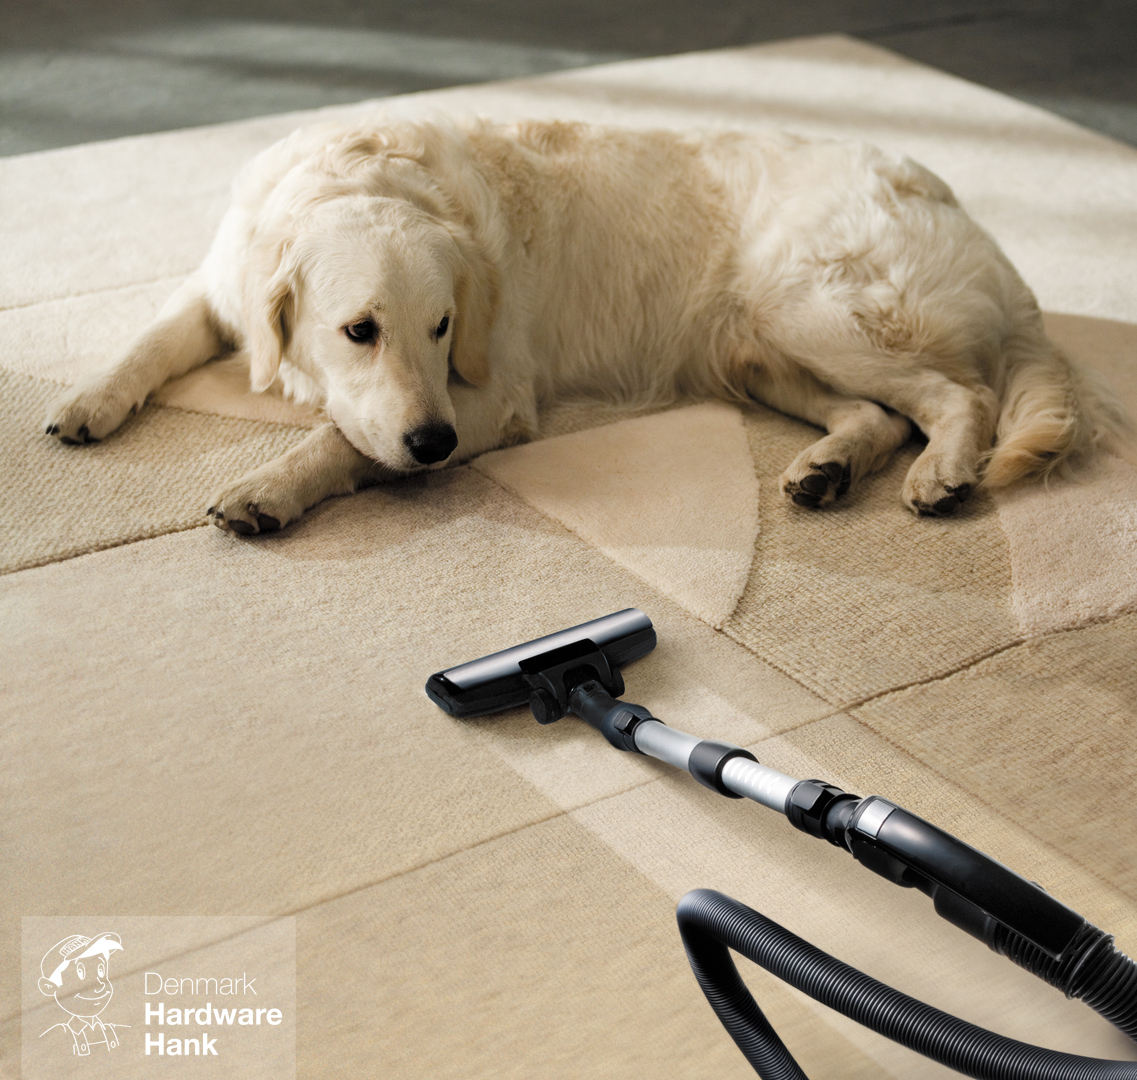 Denmark Hardware Hank carpet dog